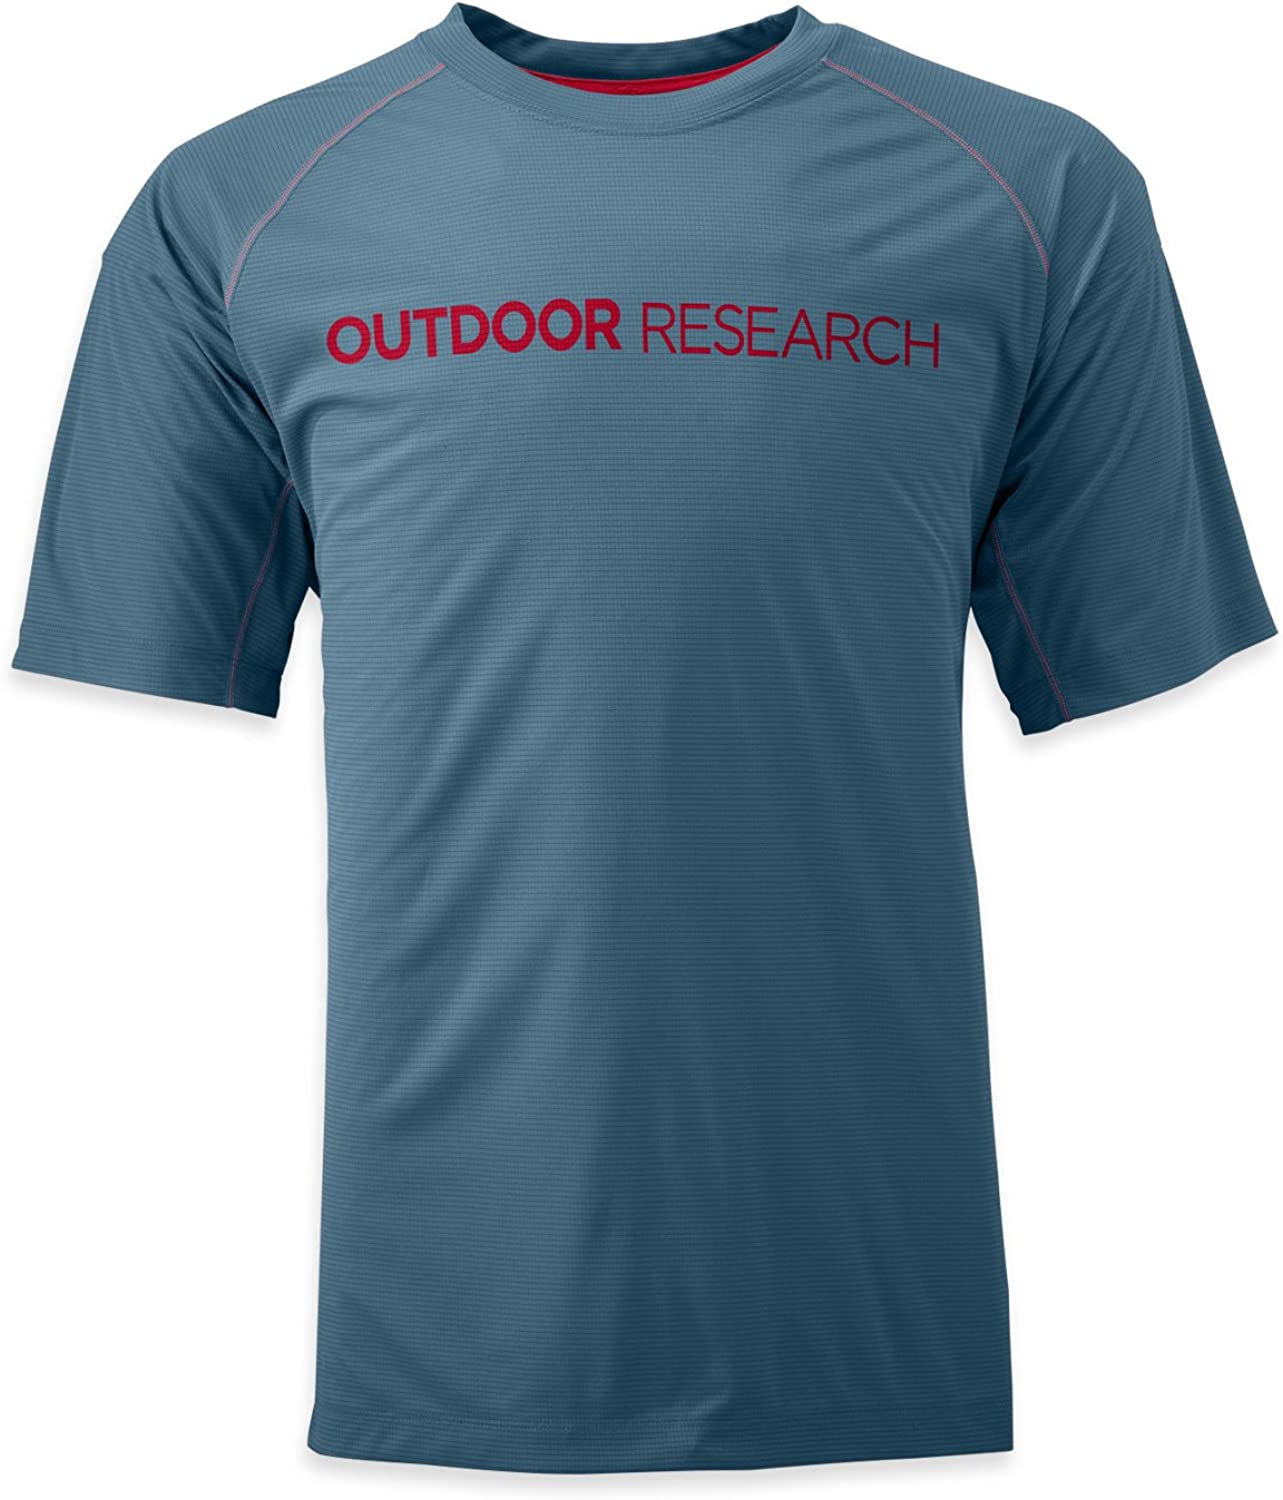 Outdoor Research Mens Echo Graphic Tee